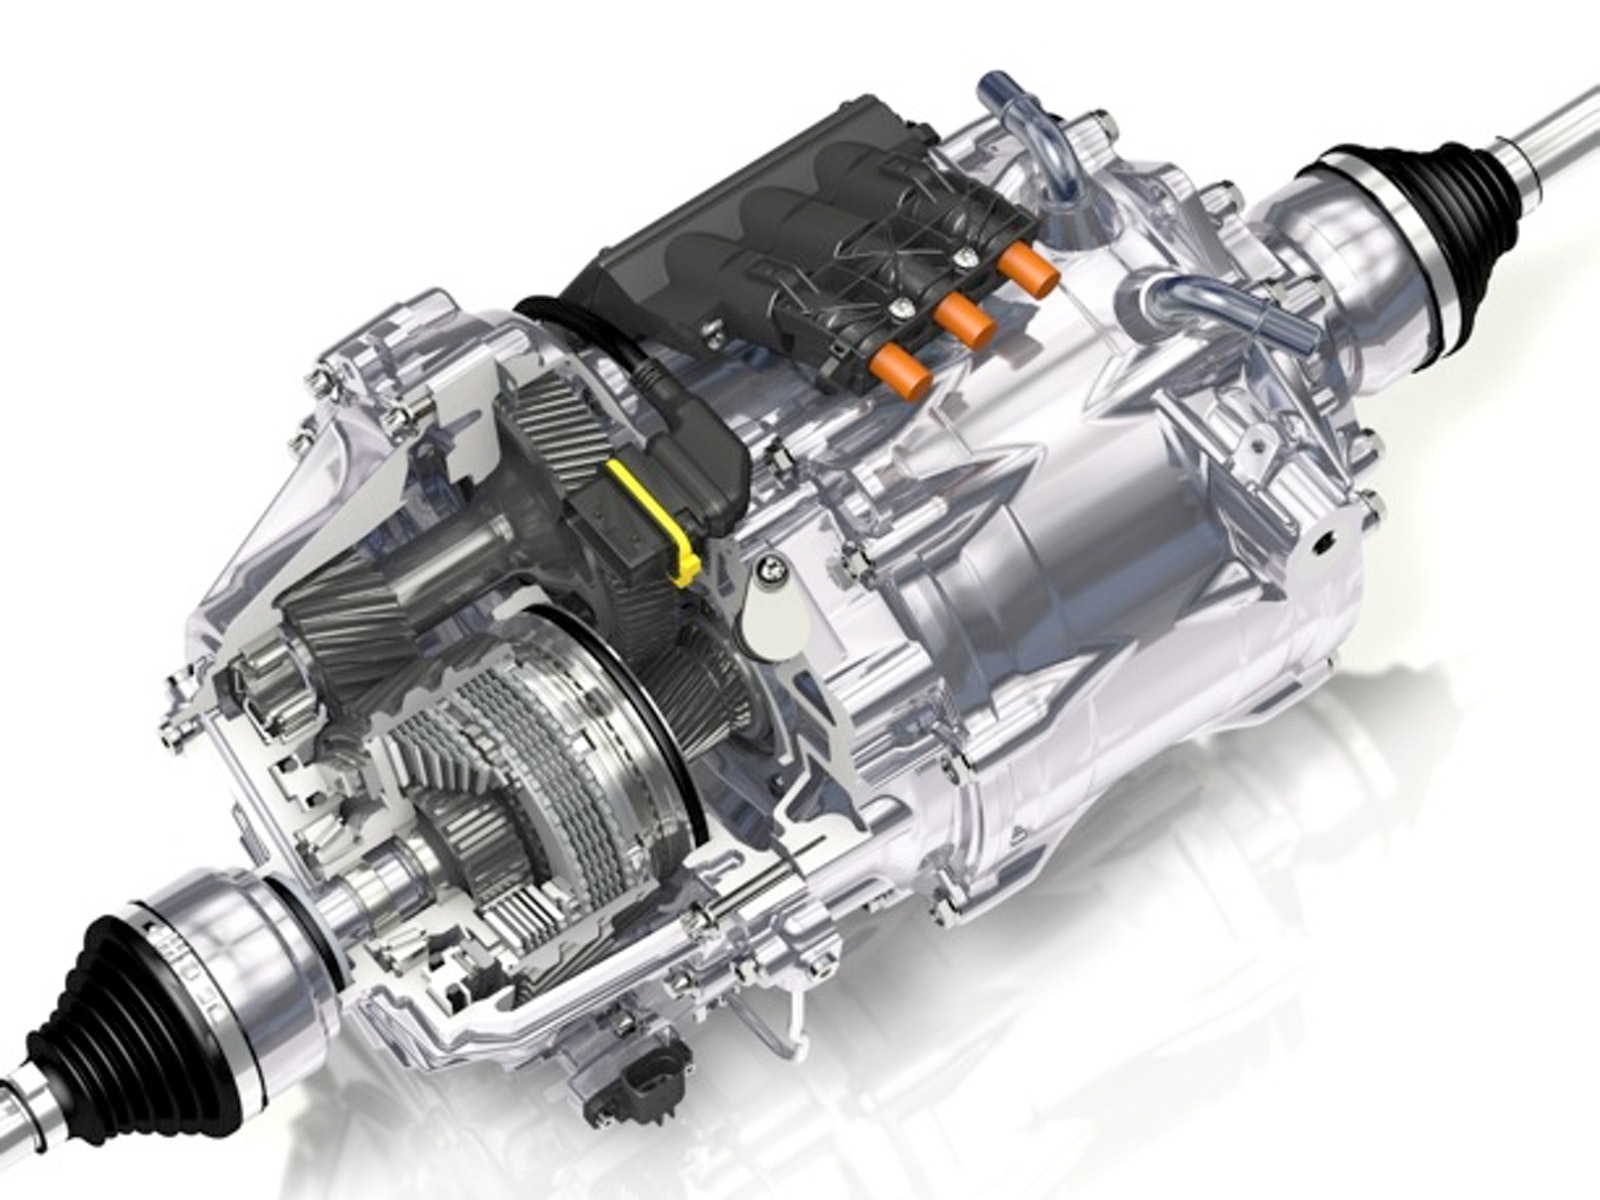 Automakers Are Test Driving A New Torque Vectoring Electric Drive System By Gkn Automotive That Will Make Hybrid Vehicles More Efficient And Dynamic